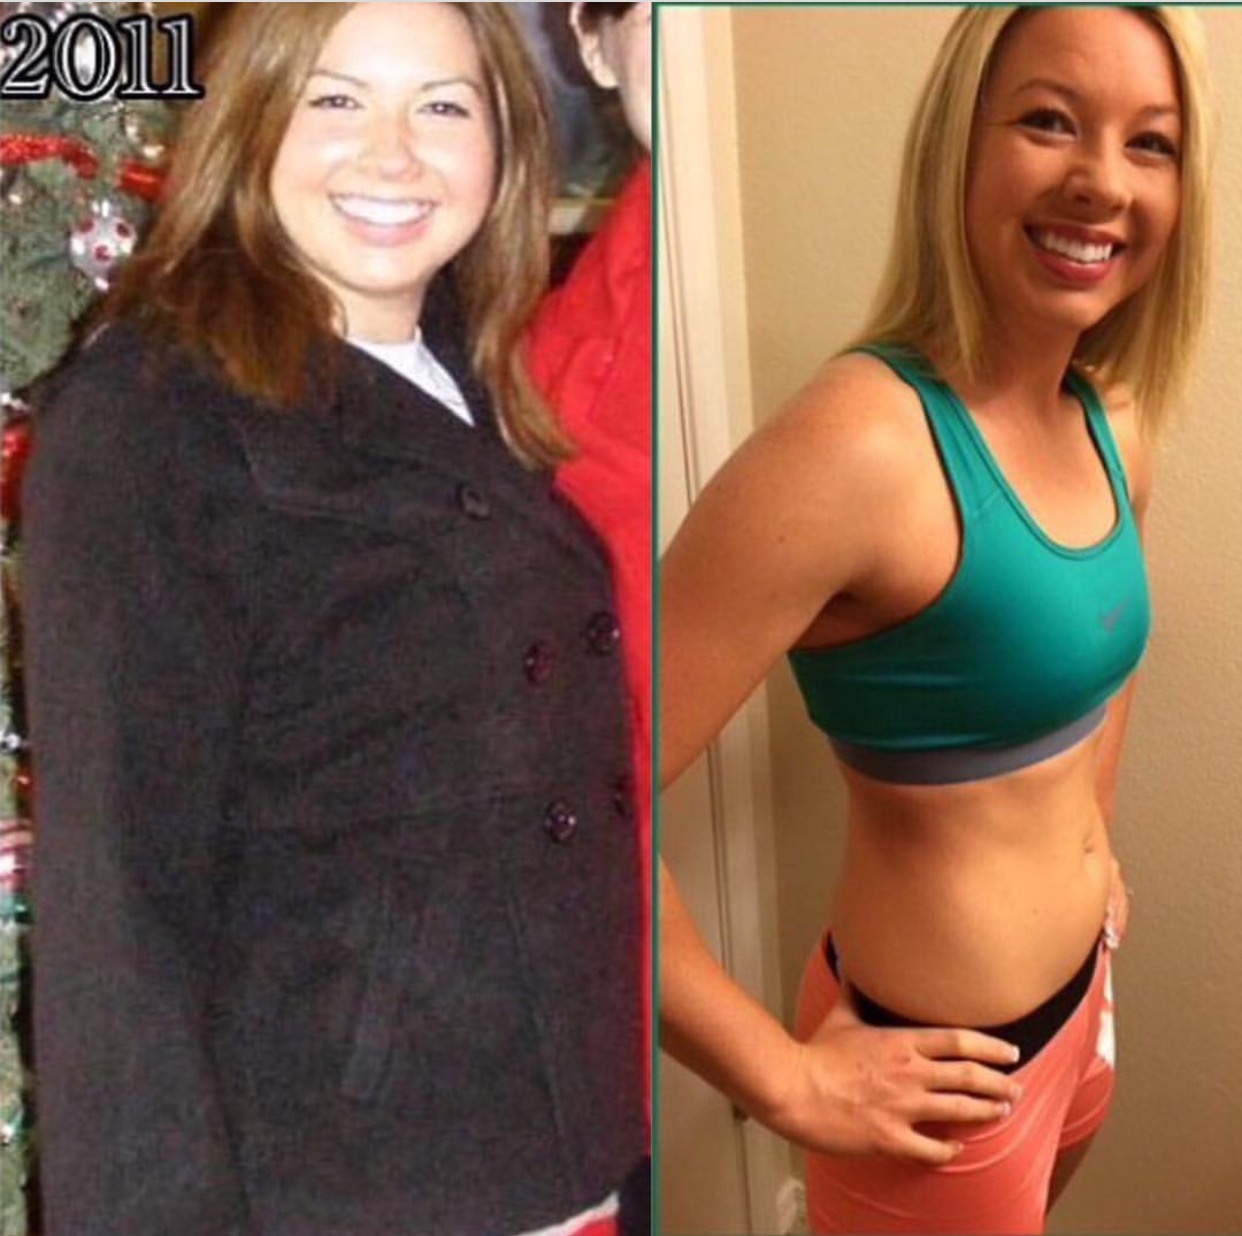 500 pounds in kg weight loss idea continue with